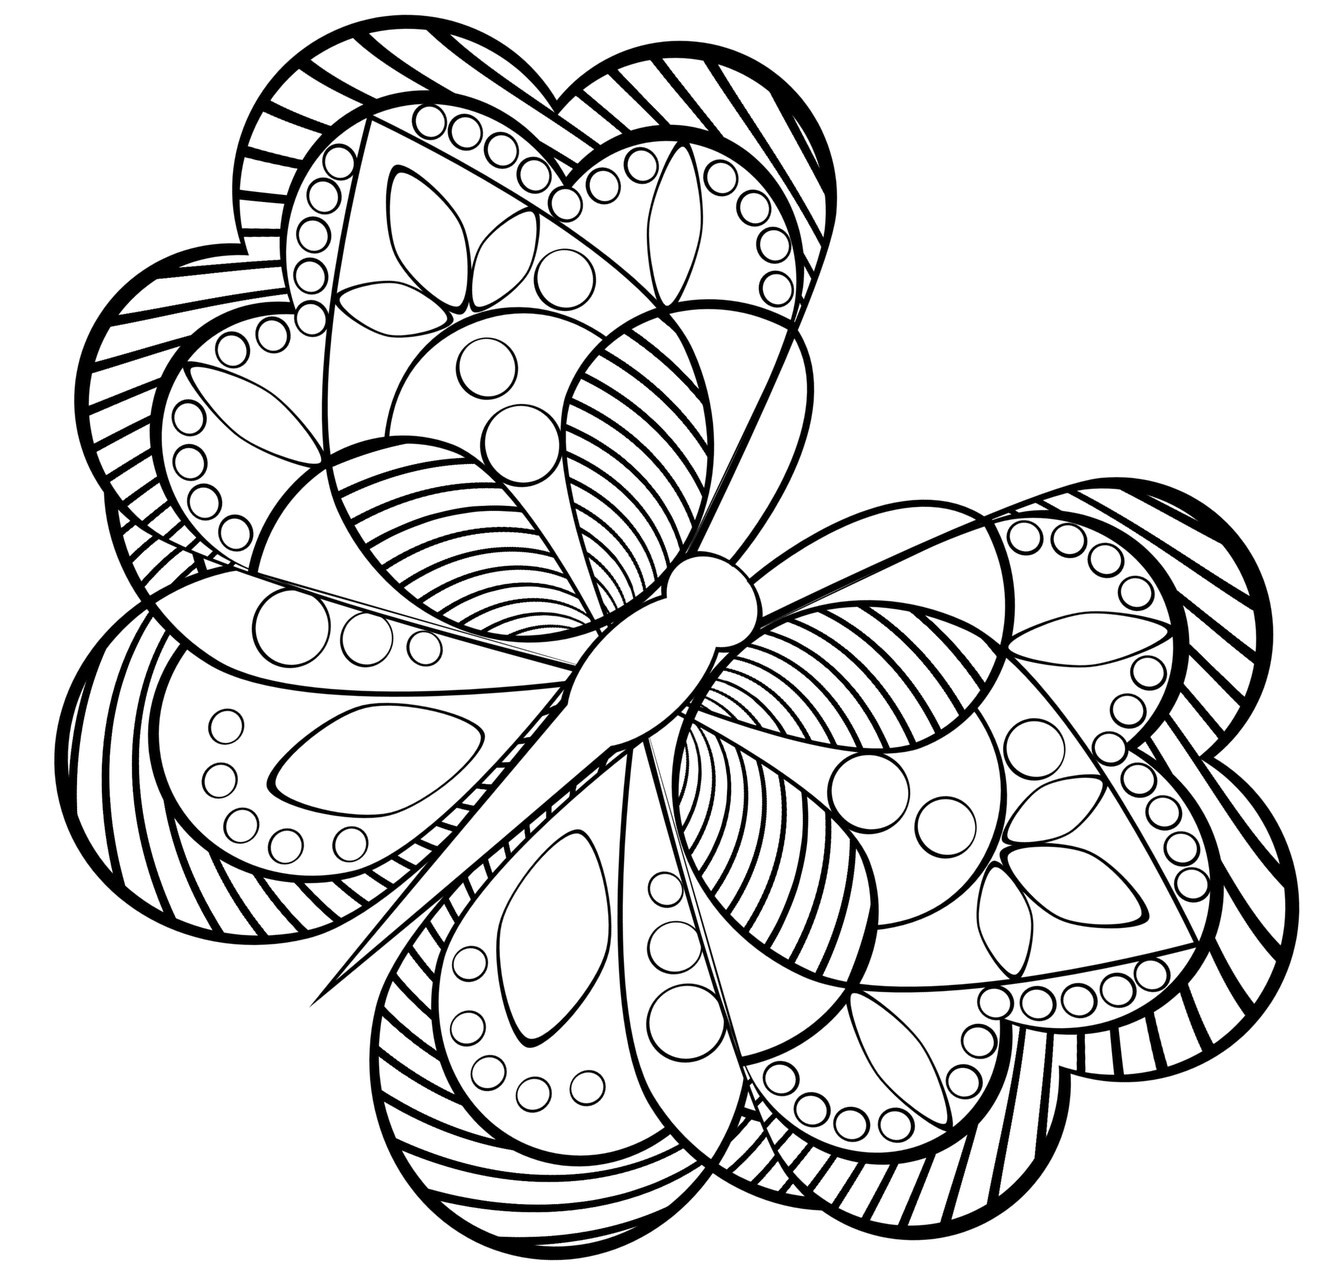 Free Coloring Pages For Adults Printable  Free Coloring Pages For Adults To Print Special Image 12